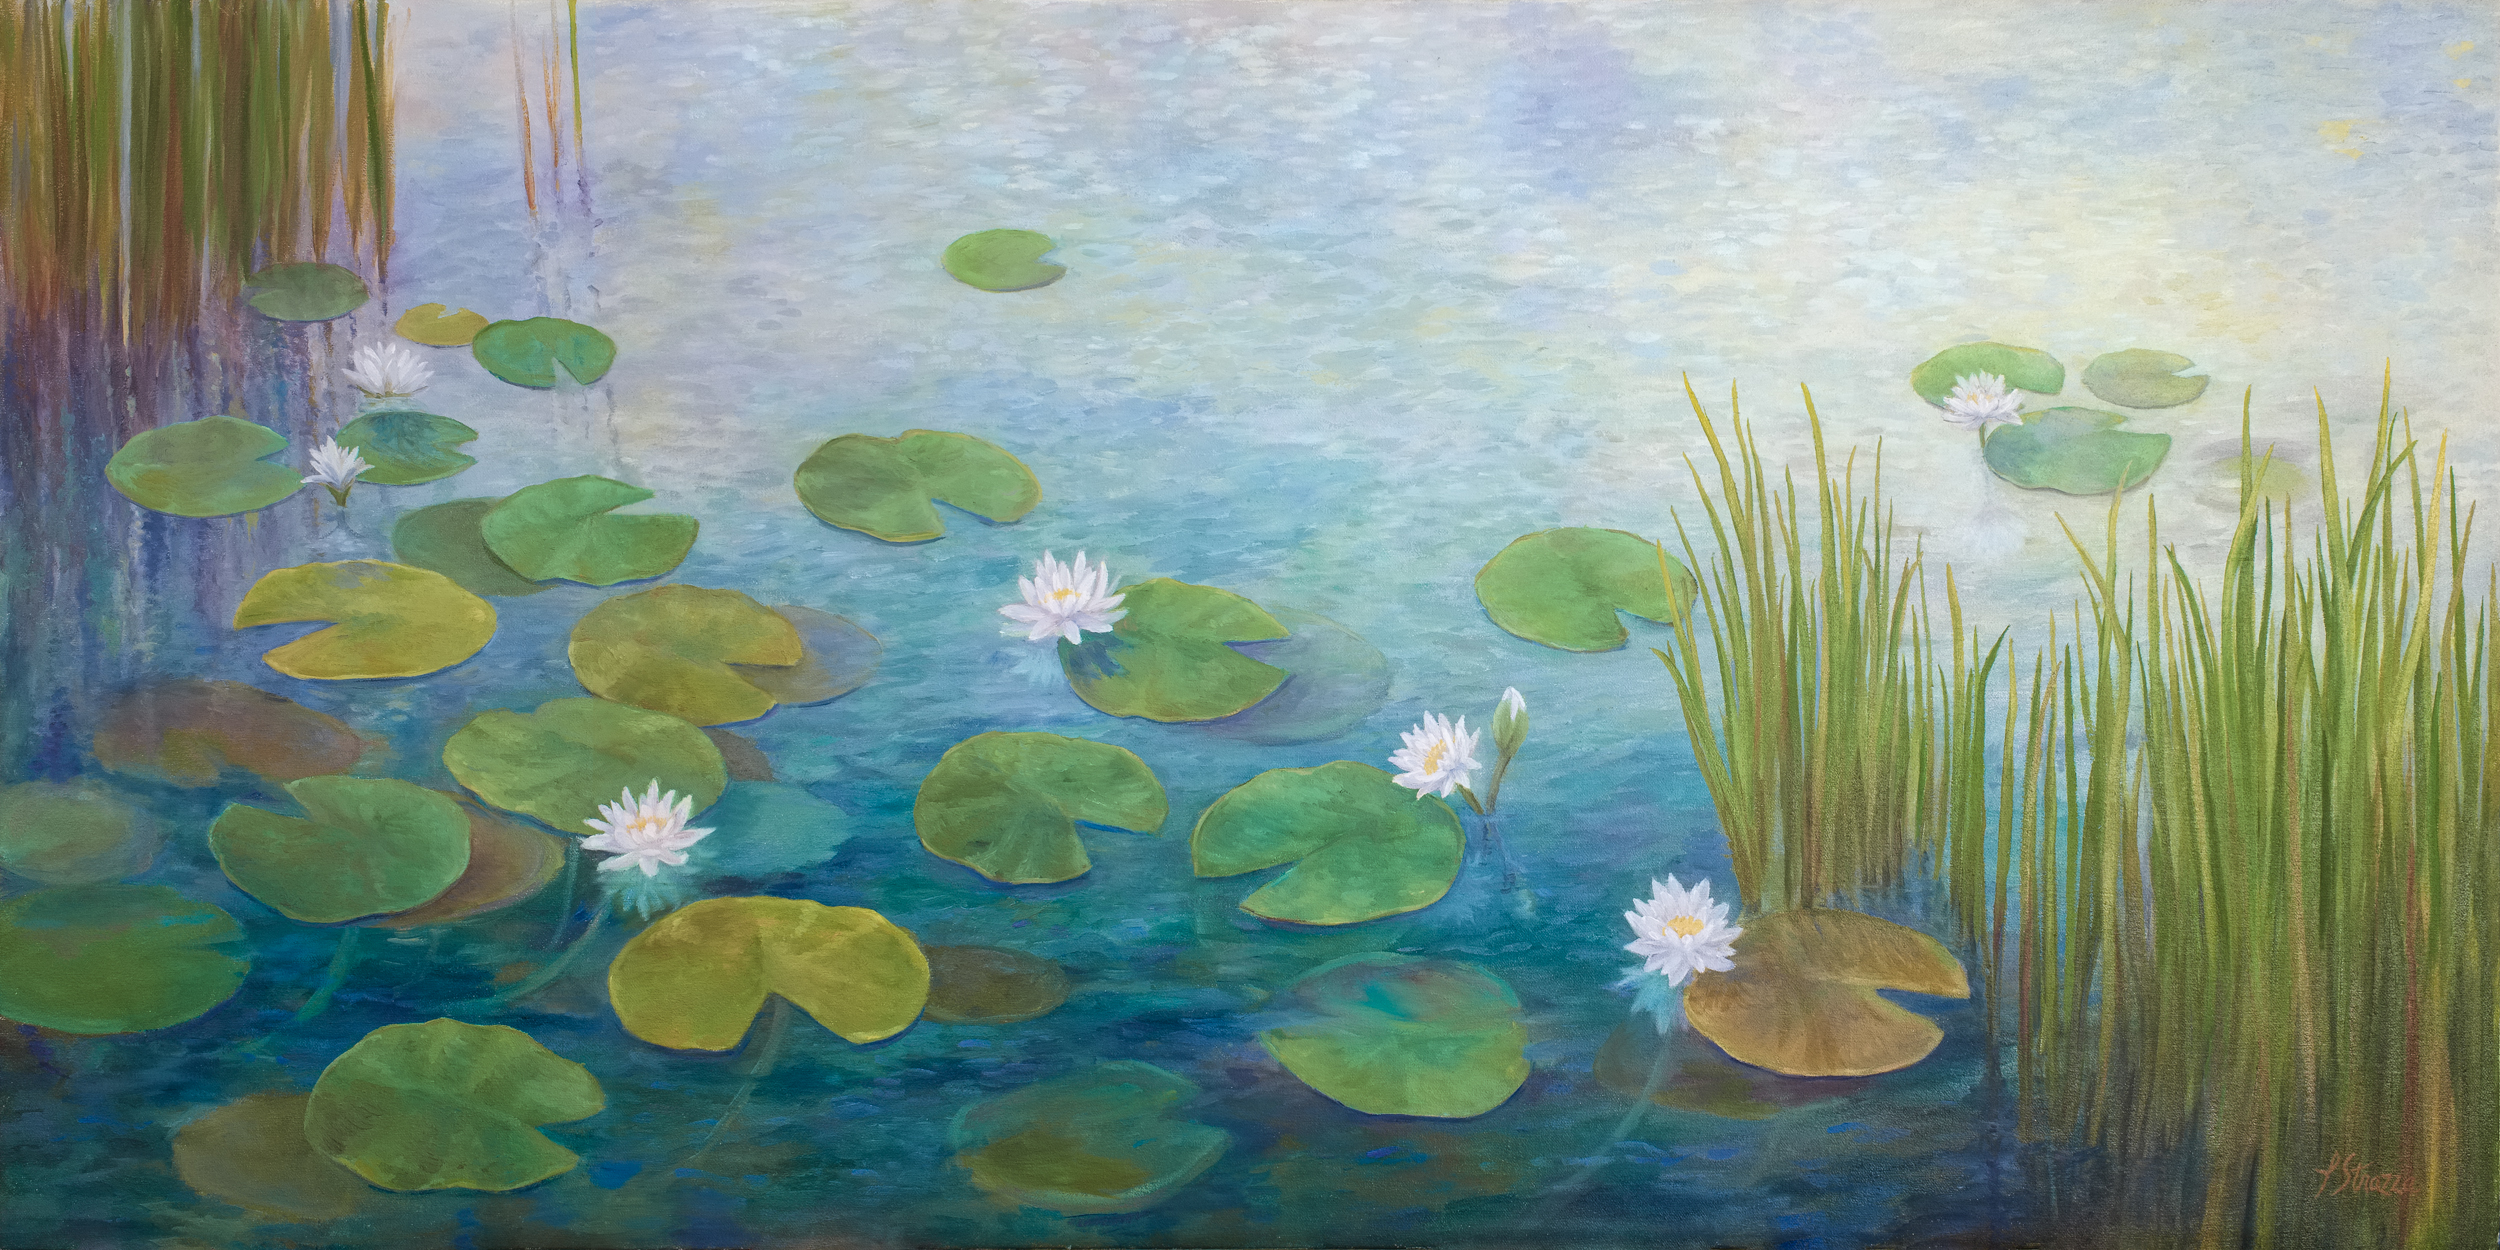 Waterlilies painting by Lisa Strazza